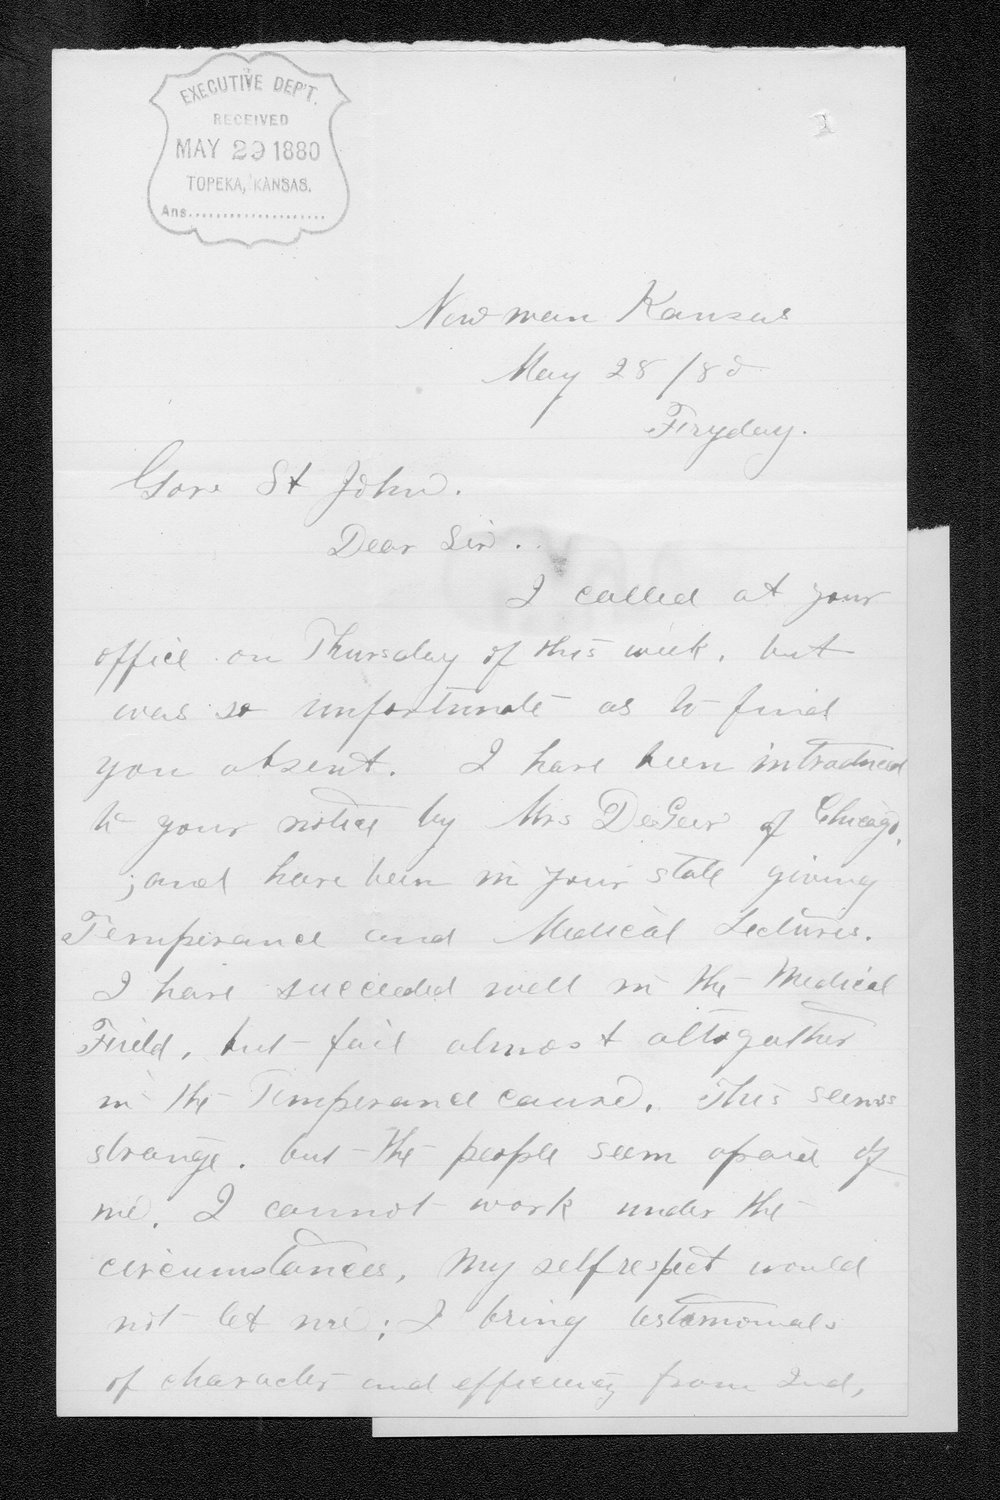 Annie B. Campbell to Governor John St. John - 1